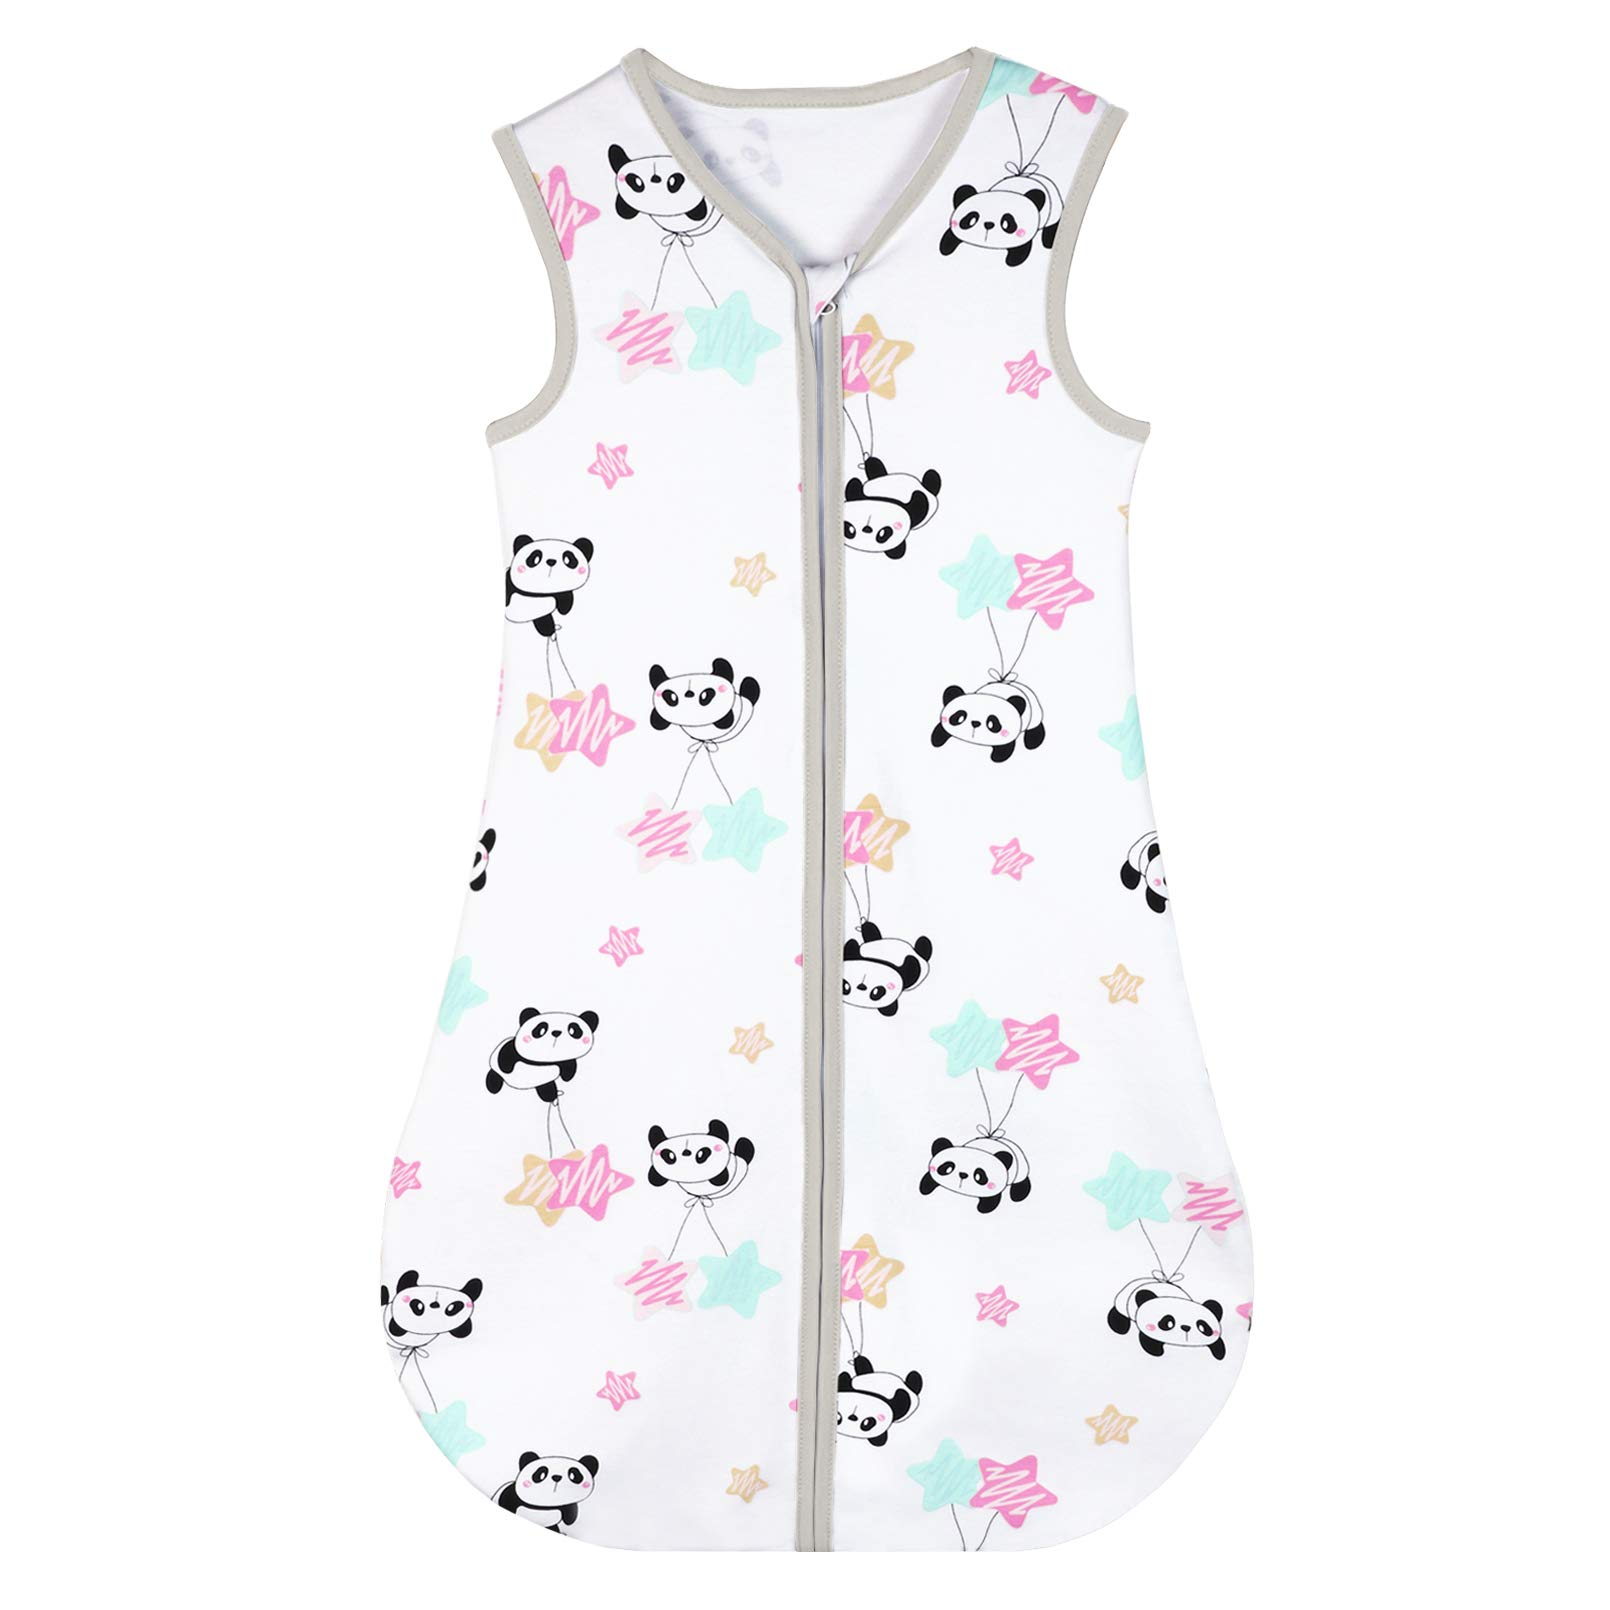 Yoofoss Baby Sleep Sack Wearable Blanket 100% Cotton Baby Sleep Bag 18-36 Month Soft Lightweigt Swaddle Transition Blanket Panda